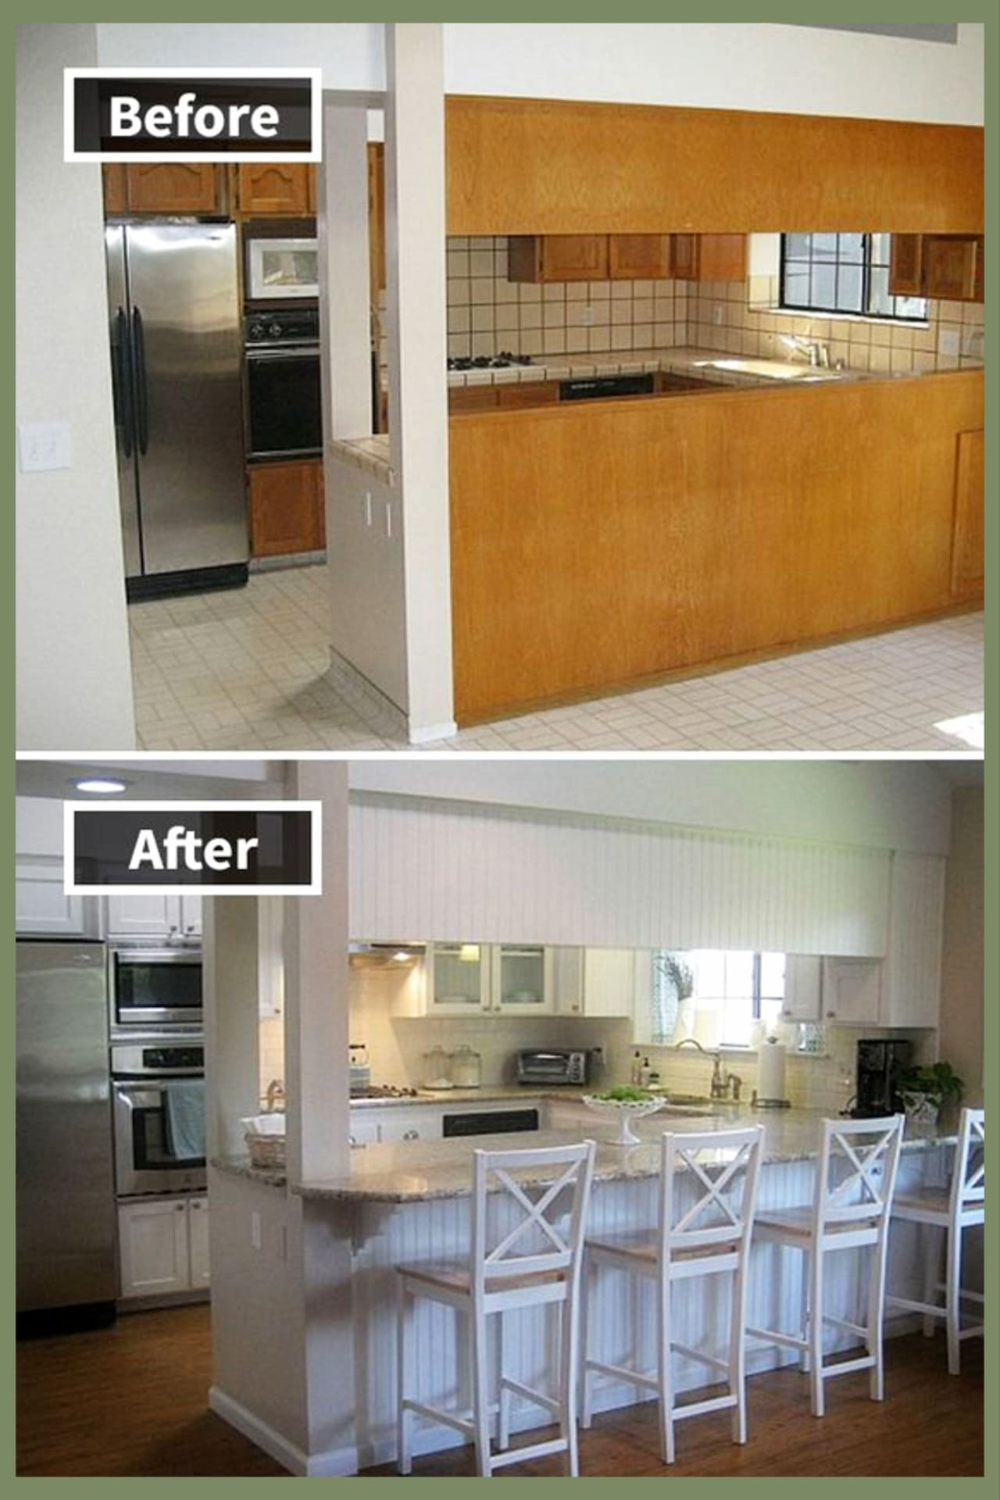 Small Kitchen Ideas On A Budget Before After Remodel Pictures Of Tiny Kitchens Clever Diy Redesign Remodeling Projects